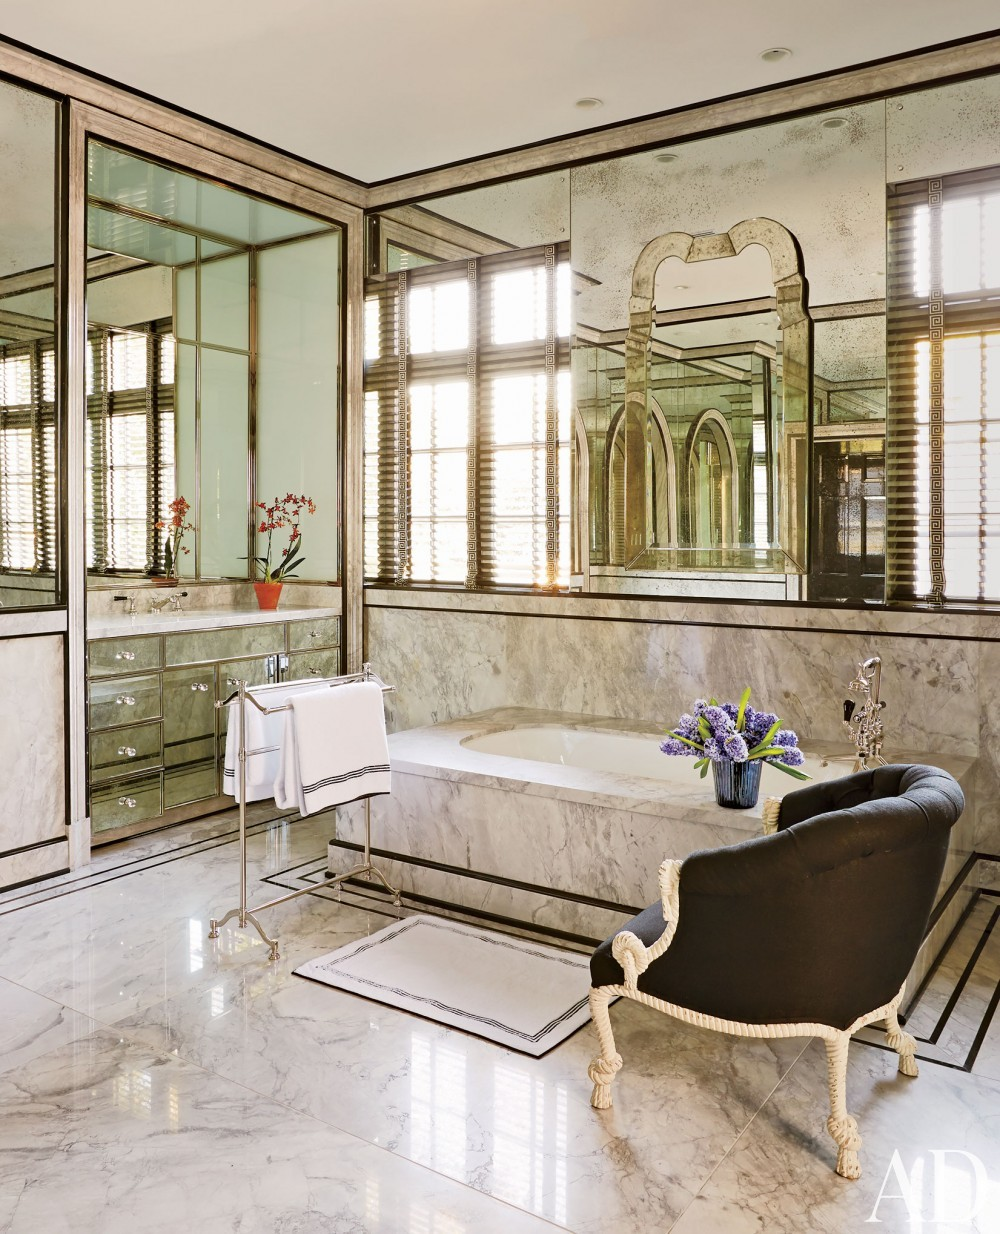 Modern bathroom by miles redd by architectural digest ad for Architectural digest bathroom ideas